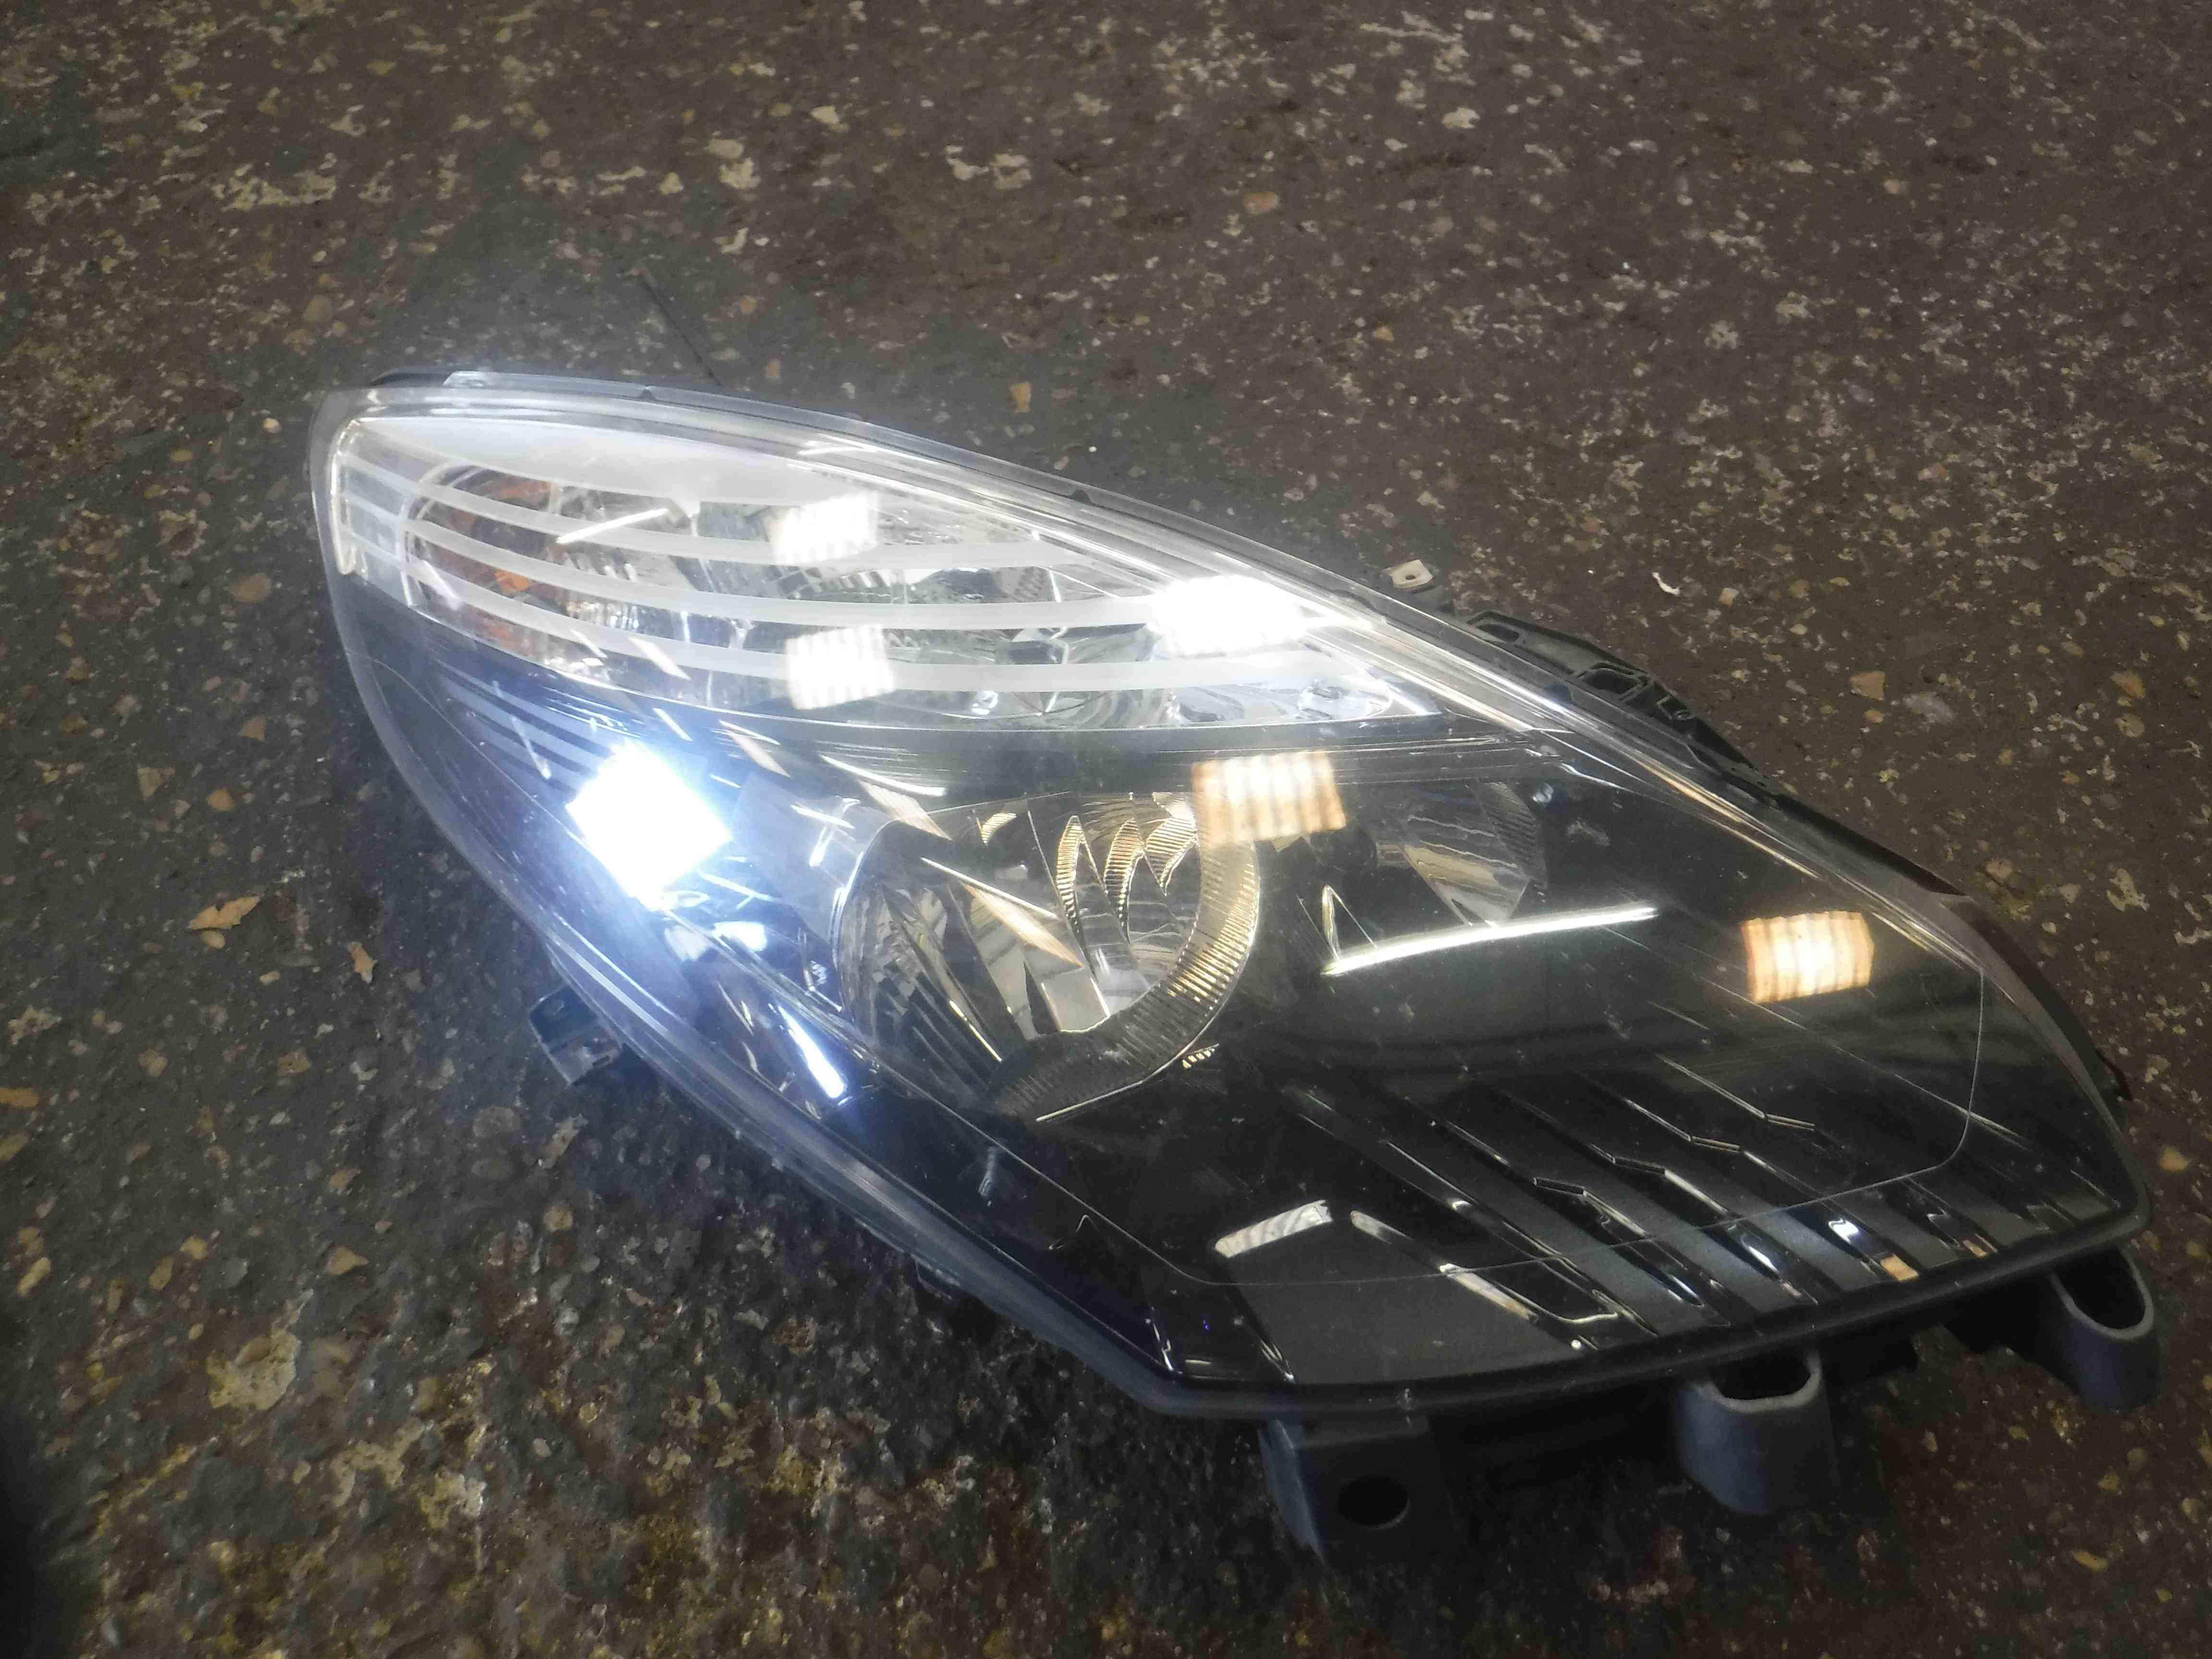 Renault Scenic MK3 2009-2013 Drivers OSF Front Headlight 260100024R